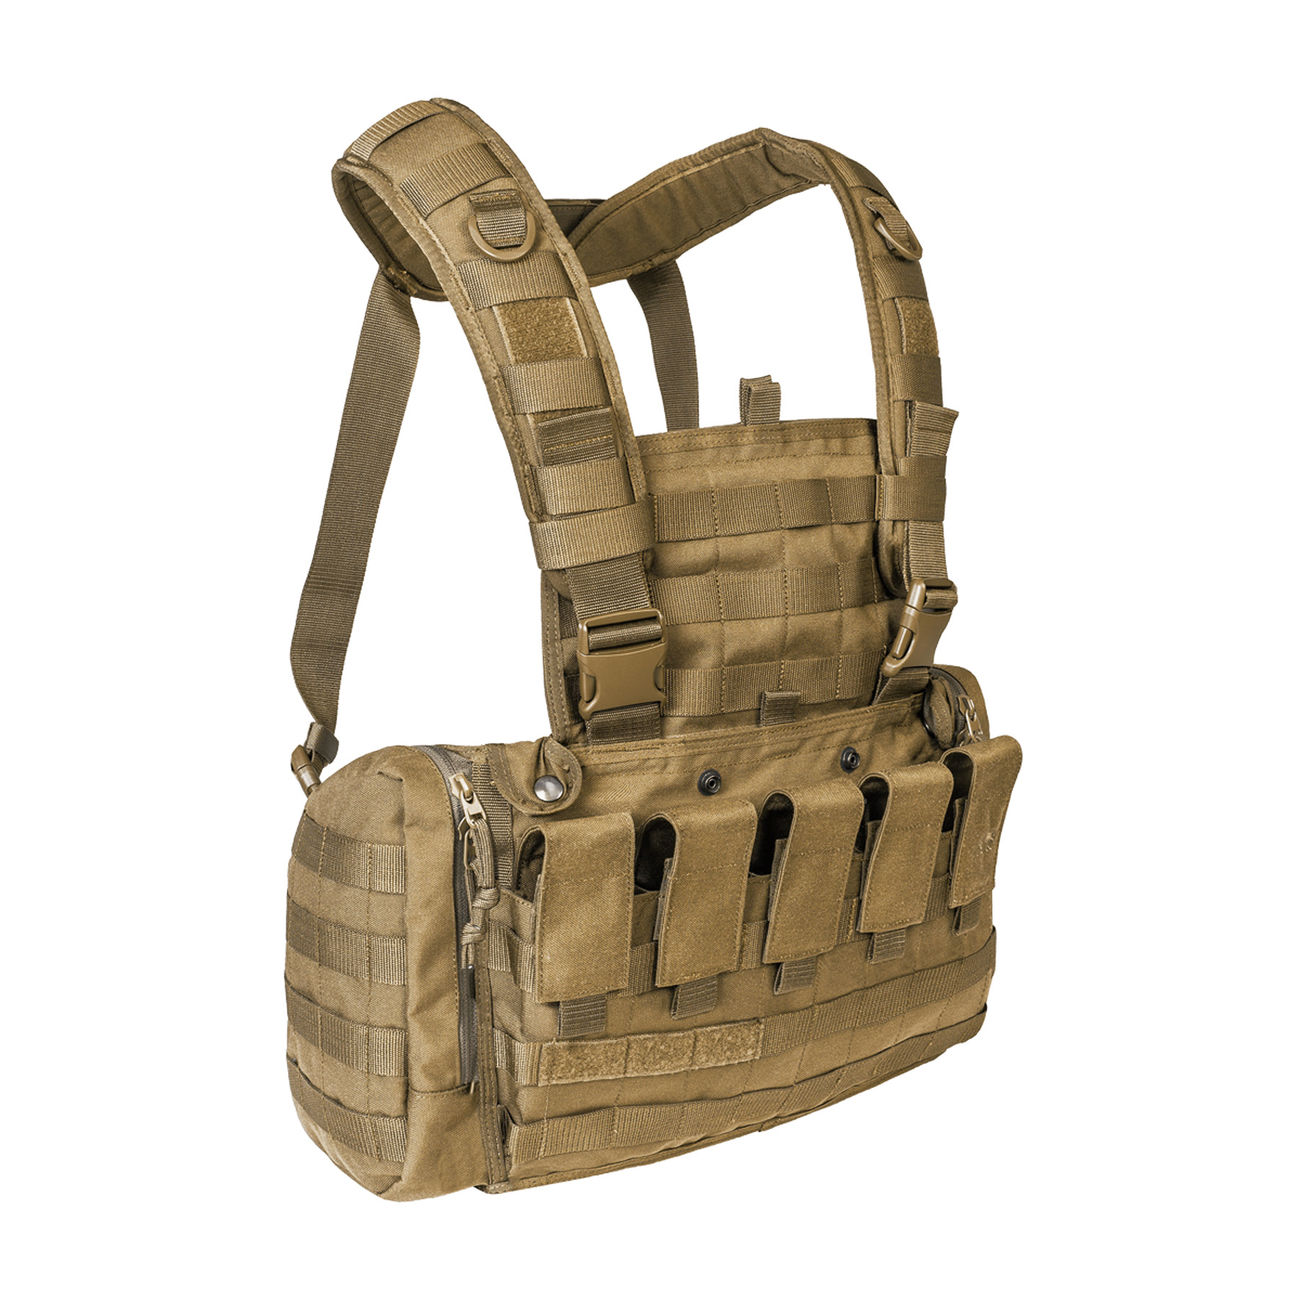 TT Chest Rig MK II M4 coyote brown 0